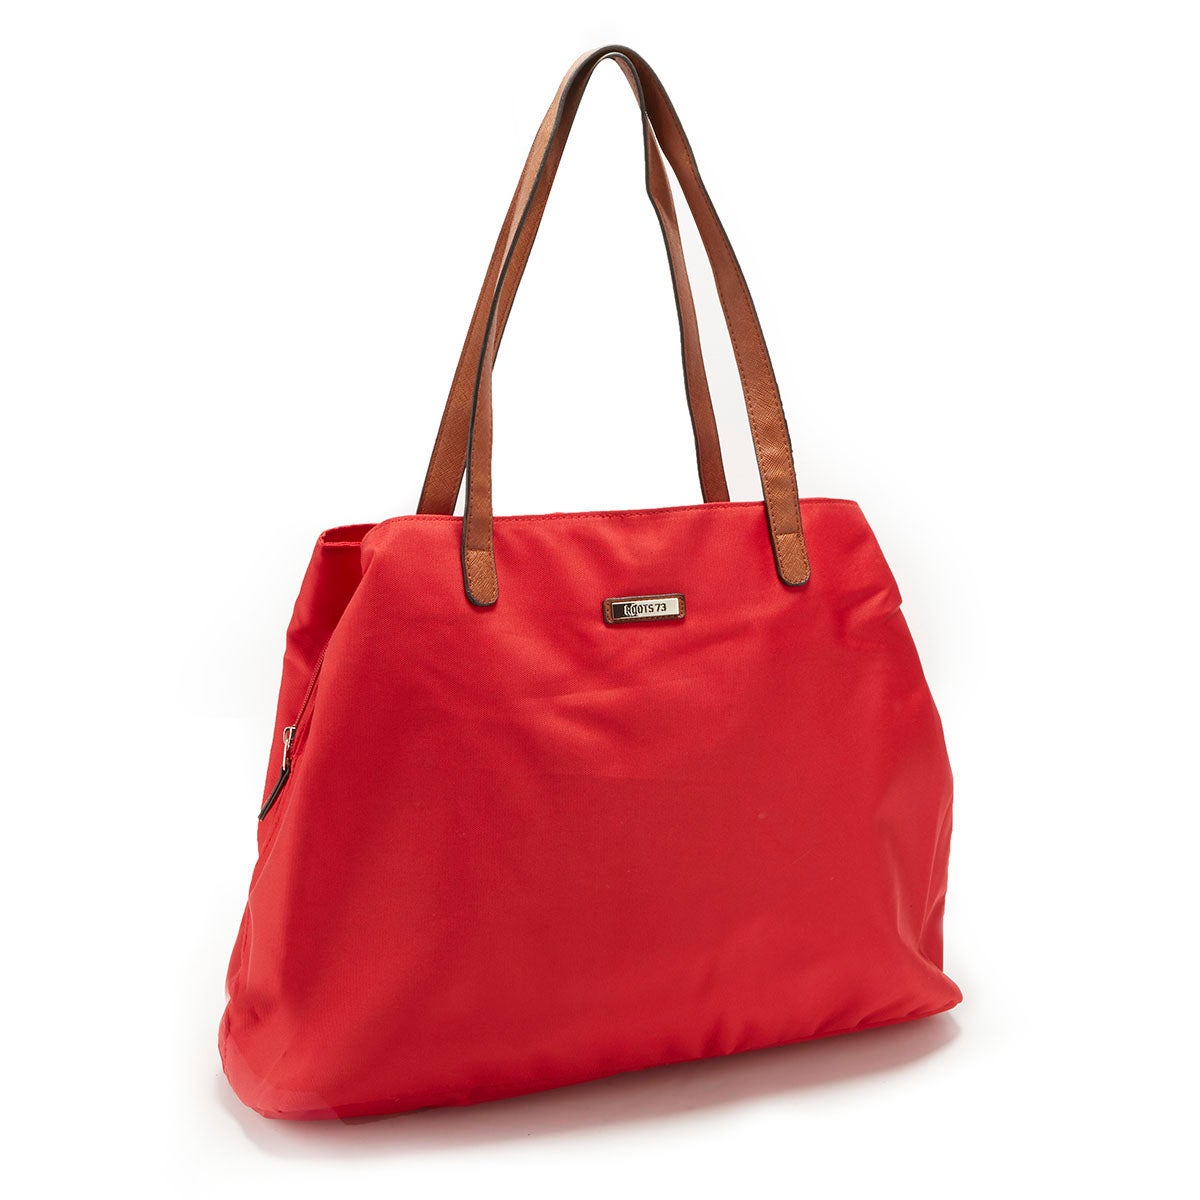 Women's ROOTS73 R4413 red 3 compartment satchel